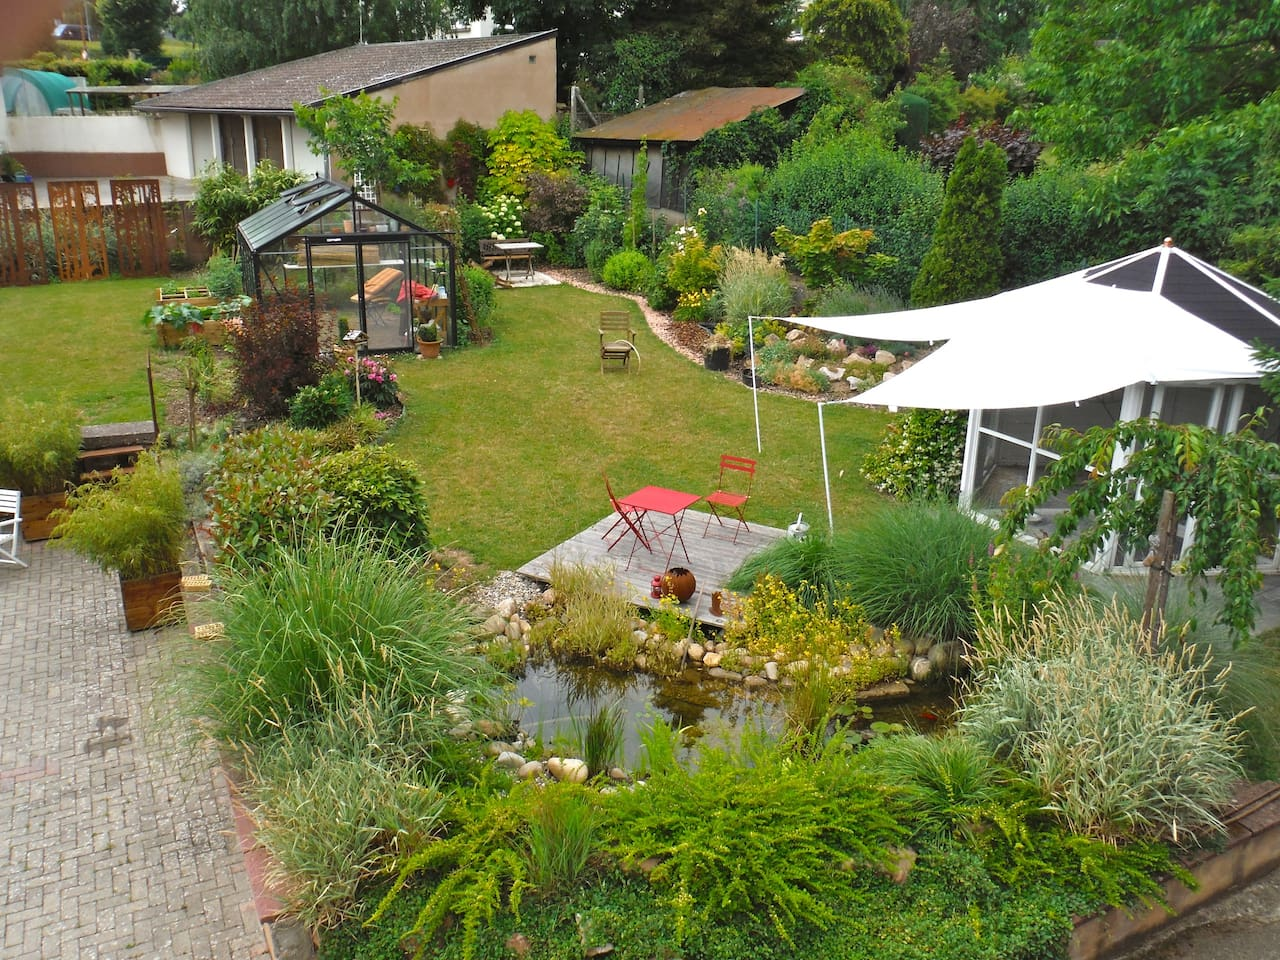 Jardin paysager, 3 terrasses, tonnelle, mobilier, barbecue